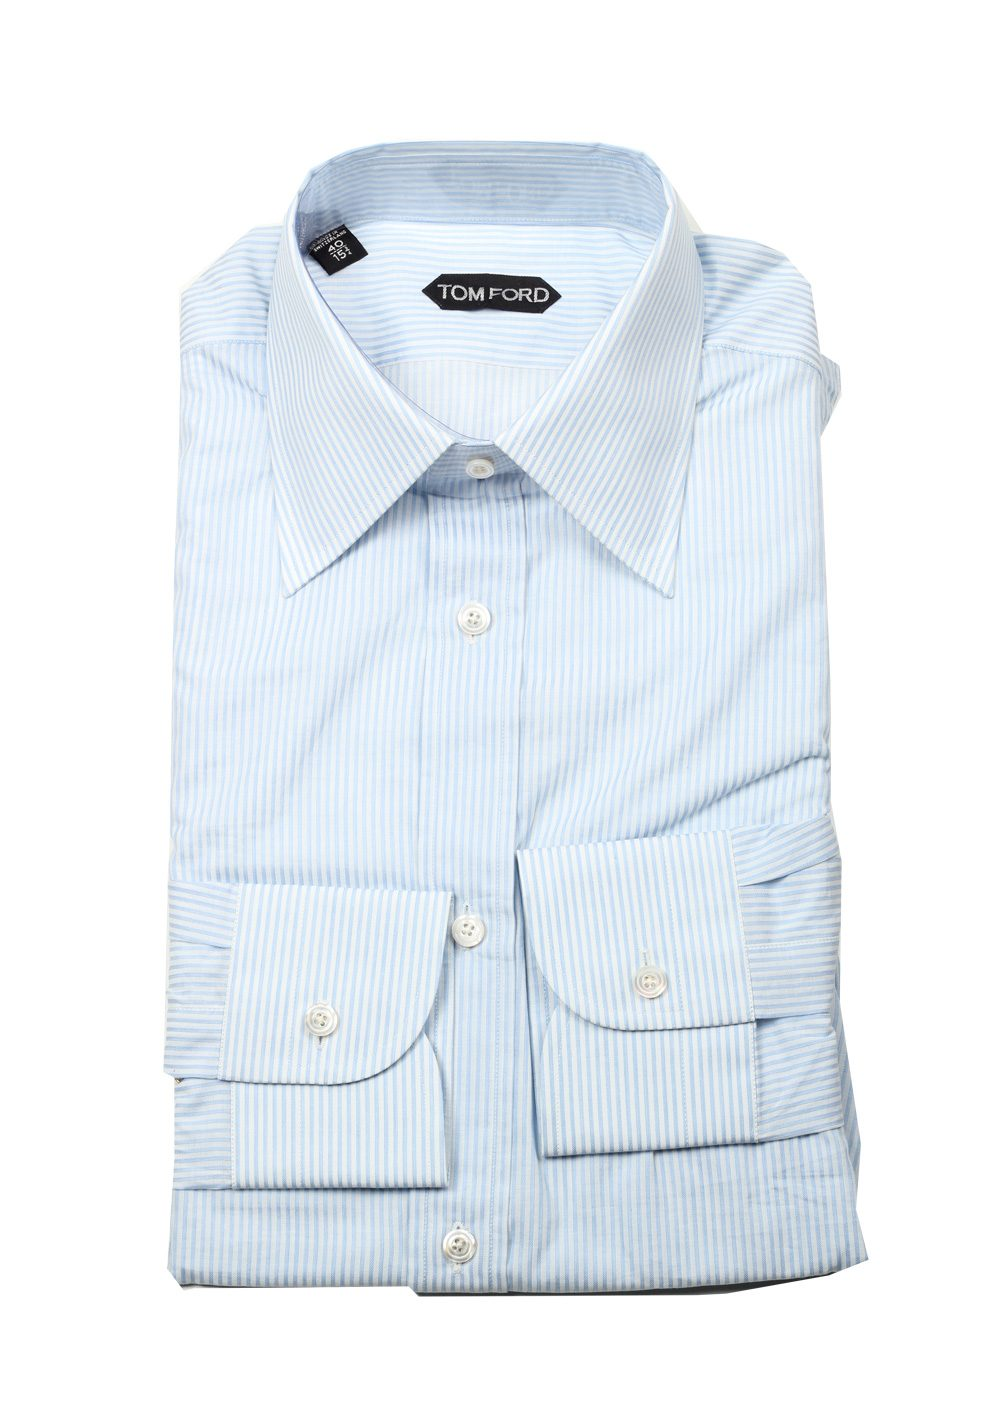 Tom ford striped white blue dress shirt size 40 15 75 u for Size 15 dress shirt